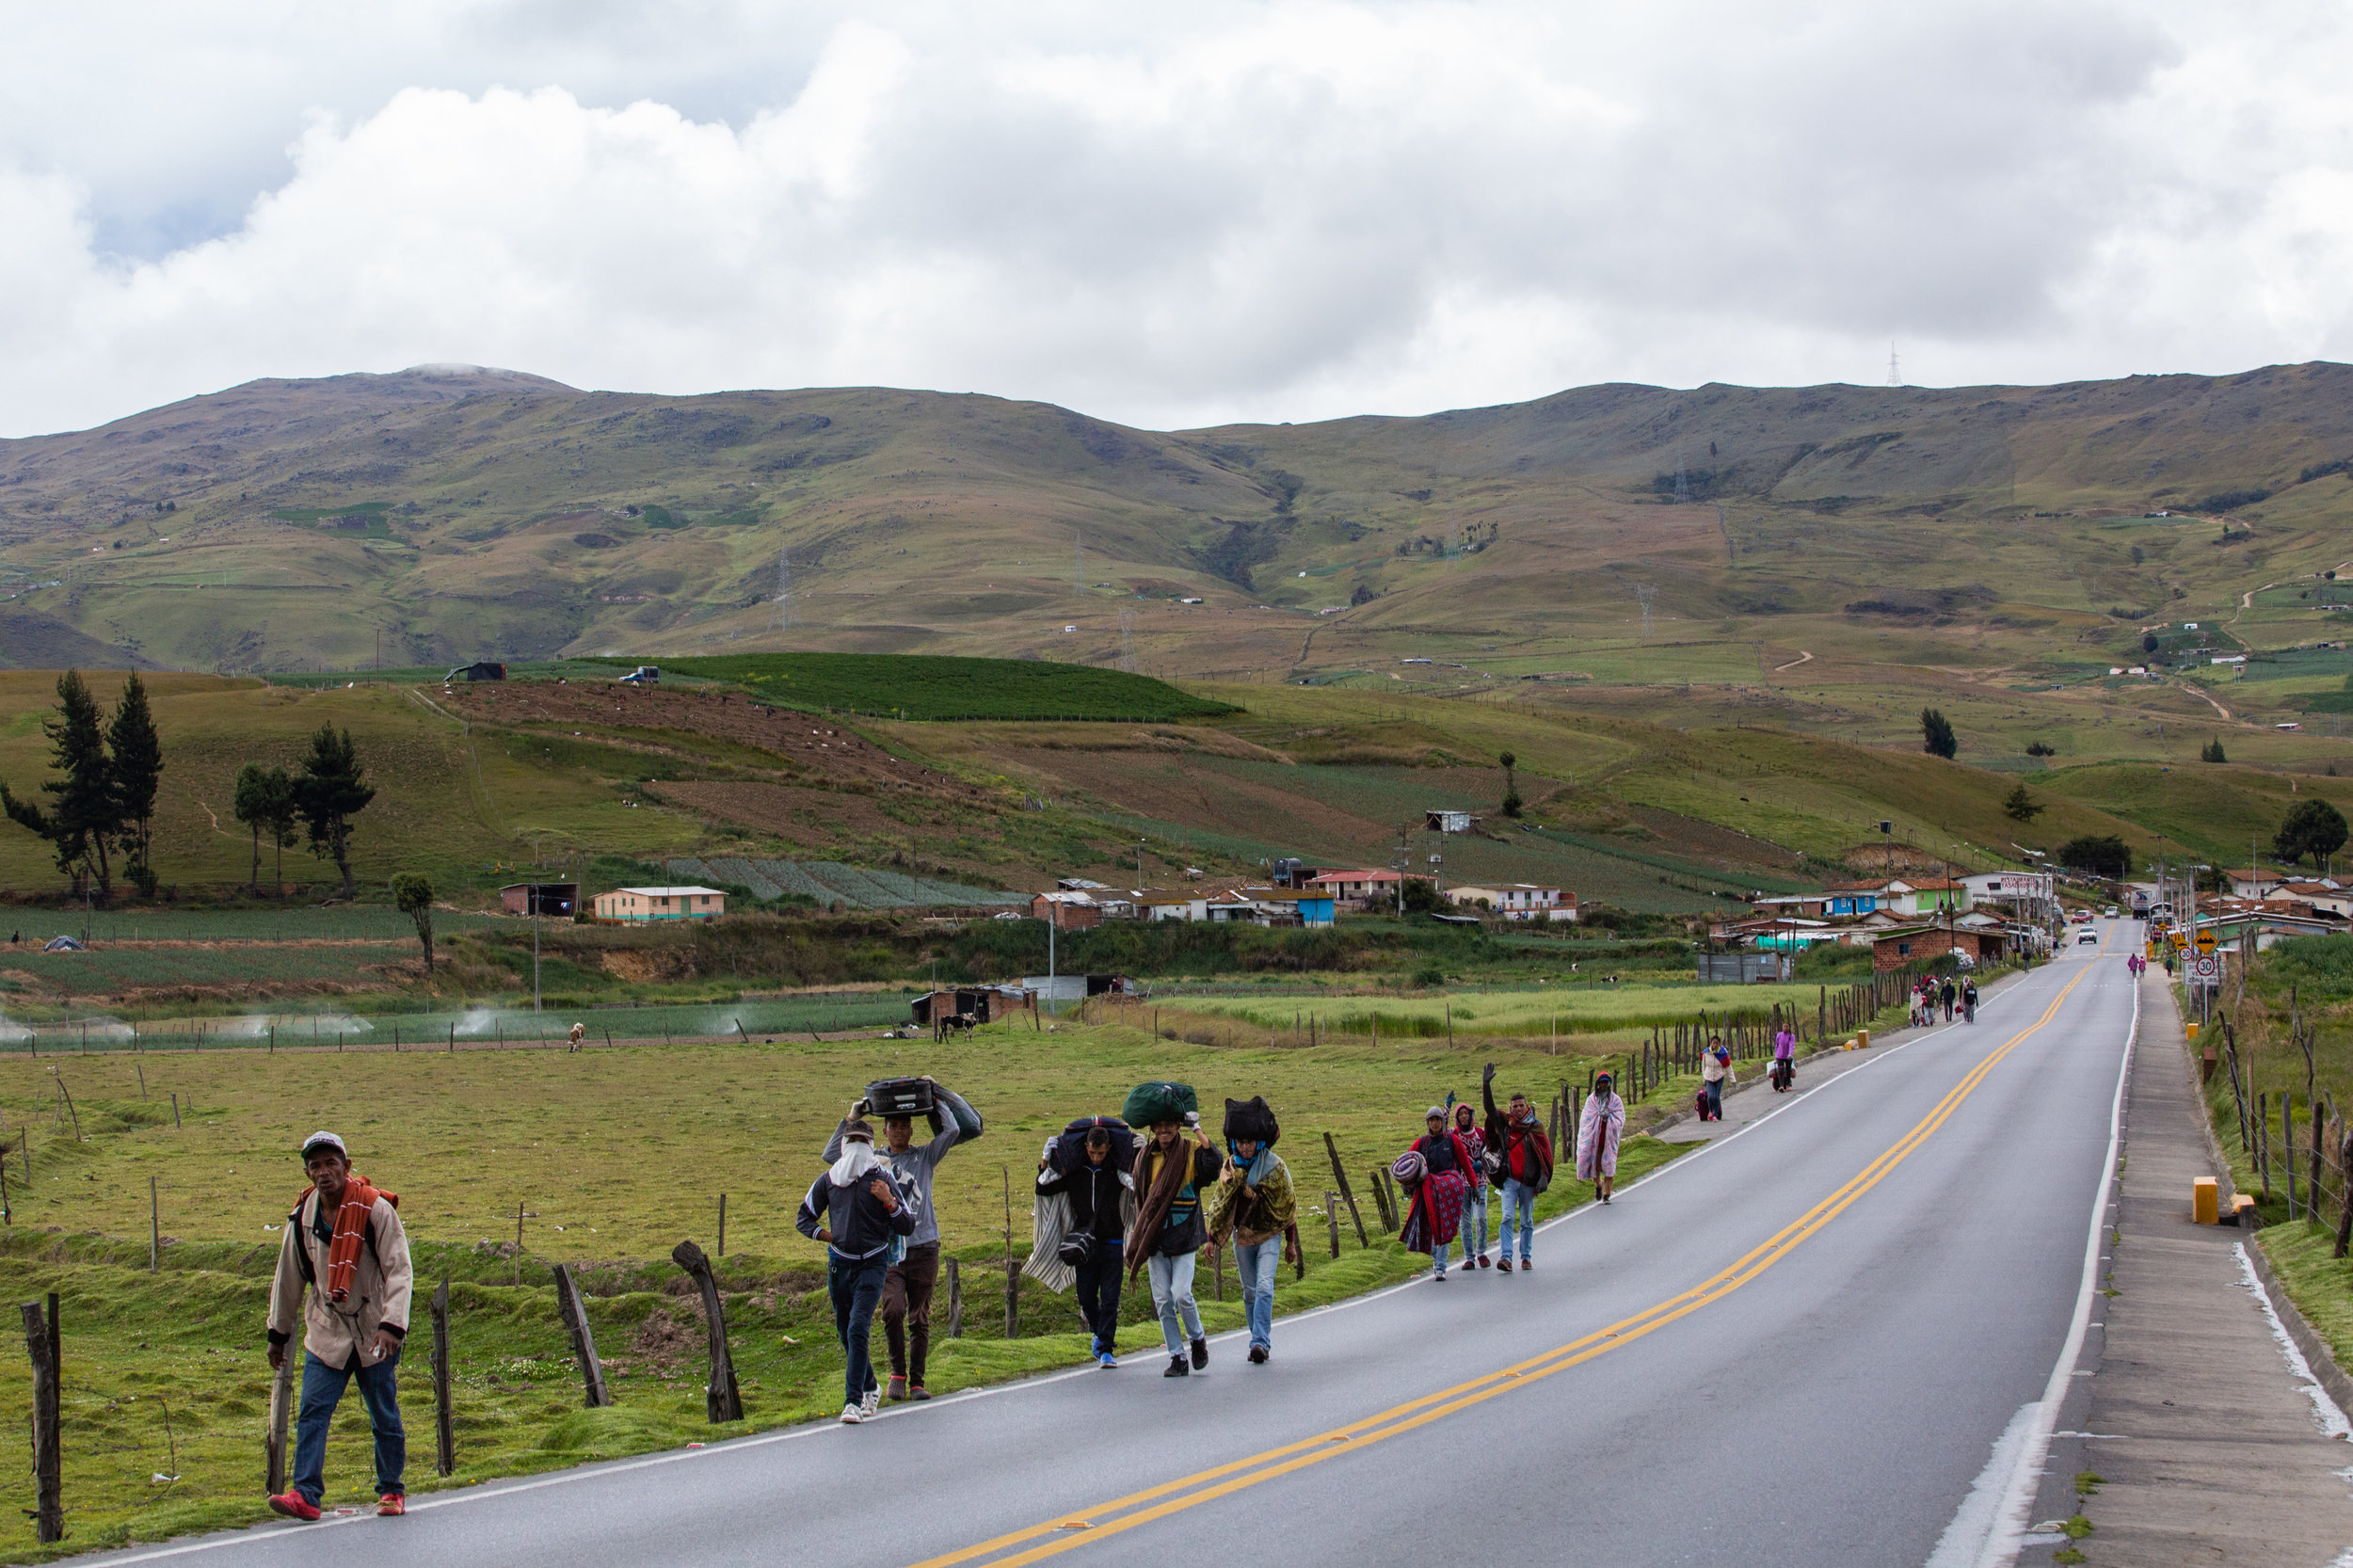 Venezuelan migrants travel on foot along a highway through the paramo de Berlin in the Andean highlands of Colombia.